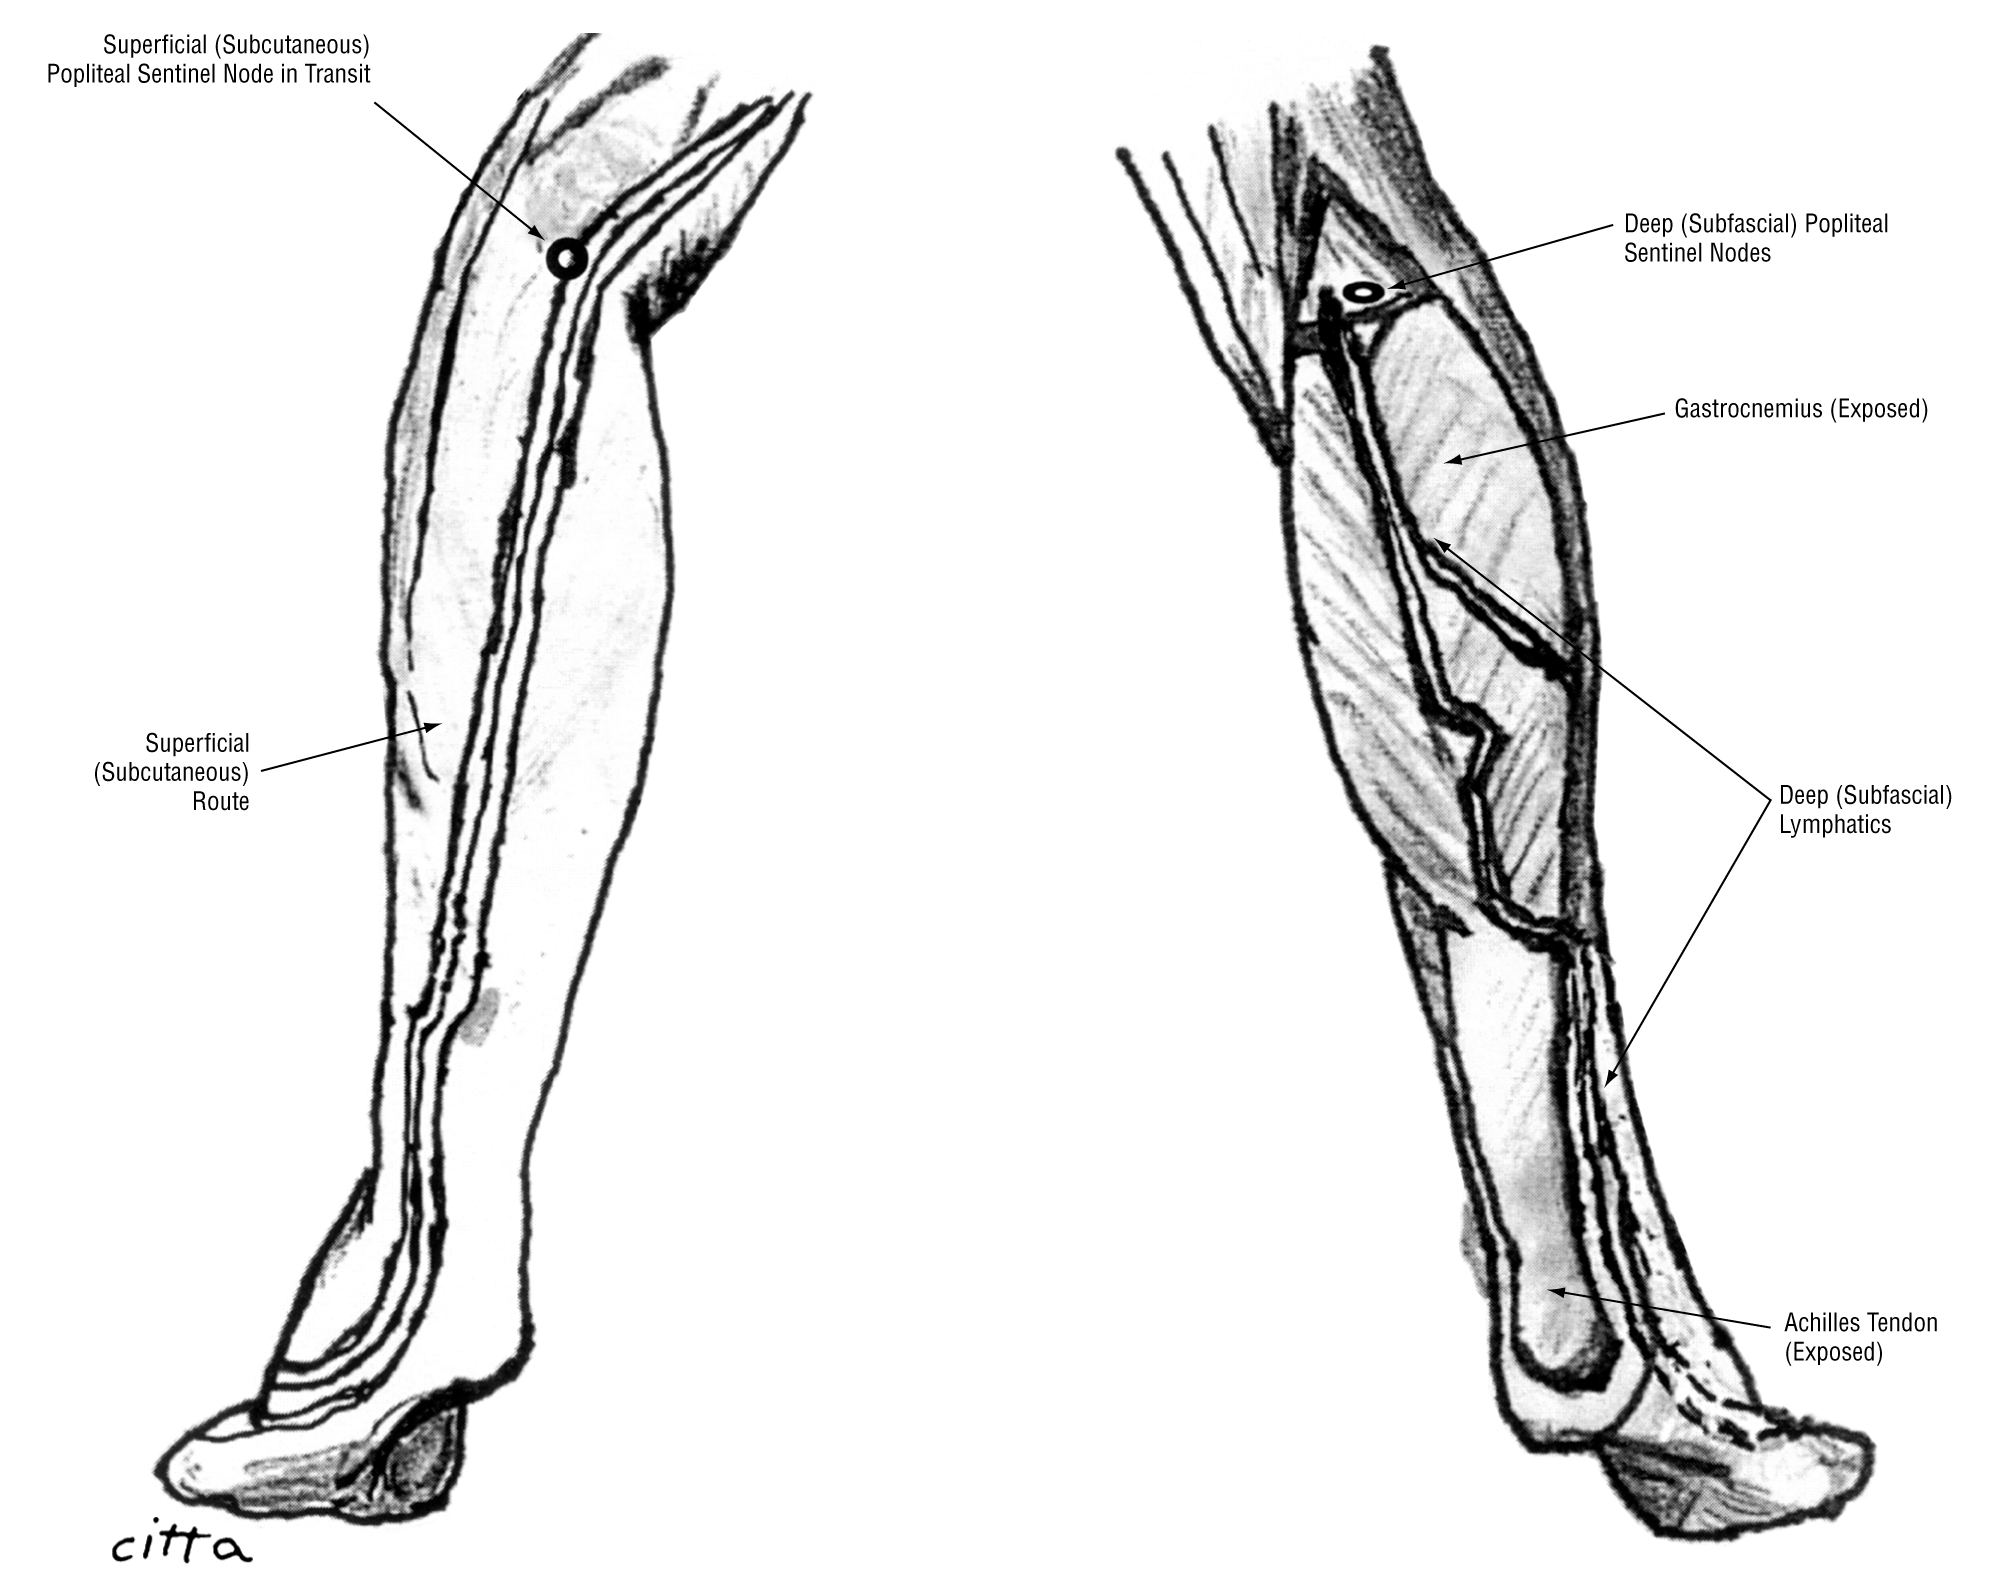 Lymphatic Drainage To The Popliteal Basin In Distal Lower Extremity